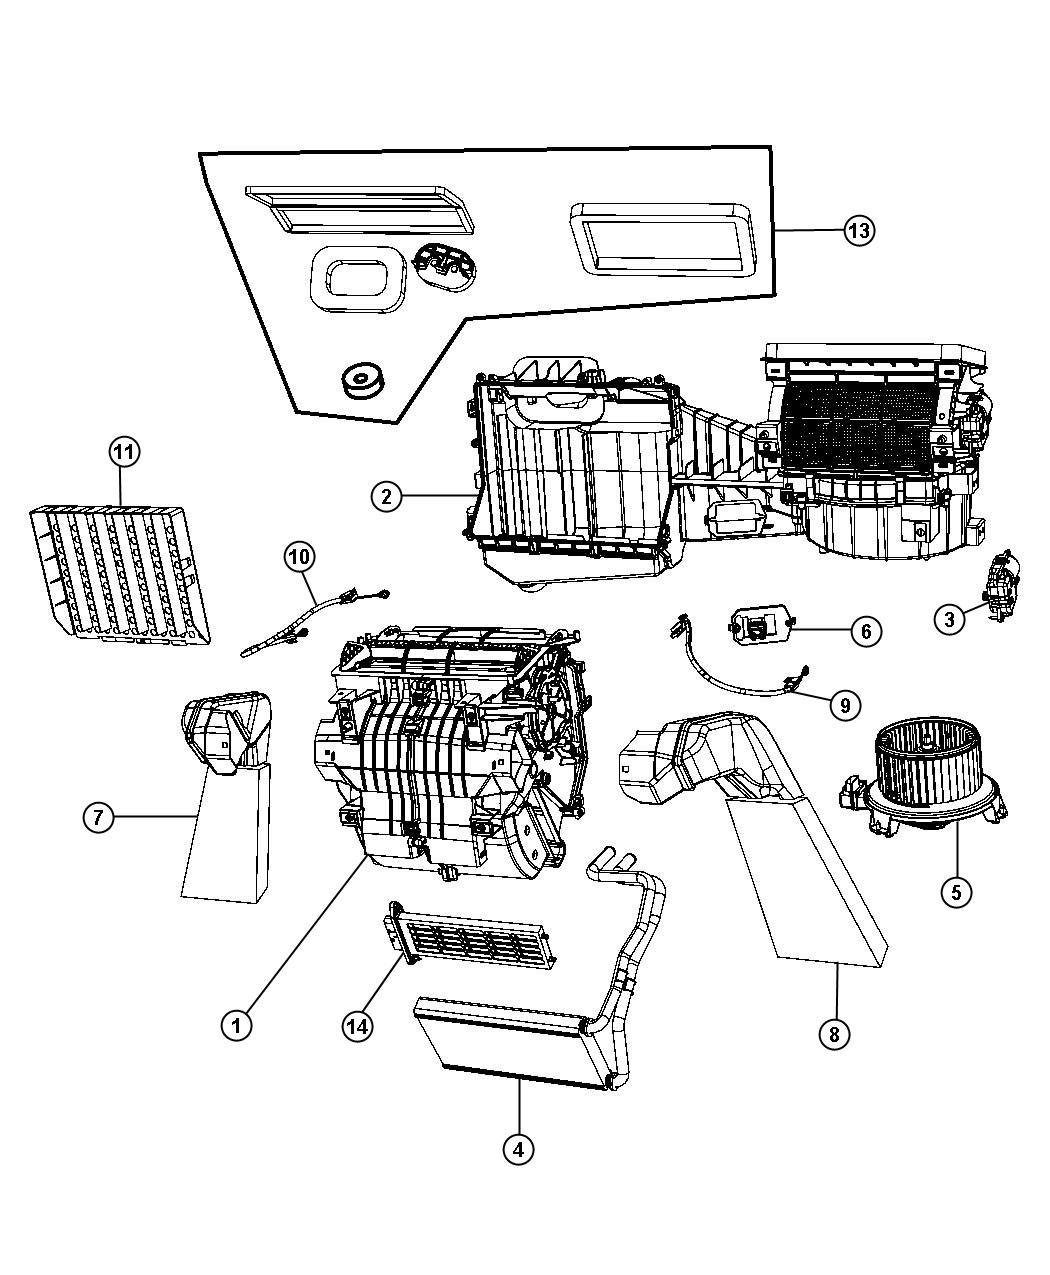 Jeep Wrangler Seal Kit Used For A C And Heater Unit